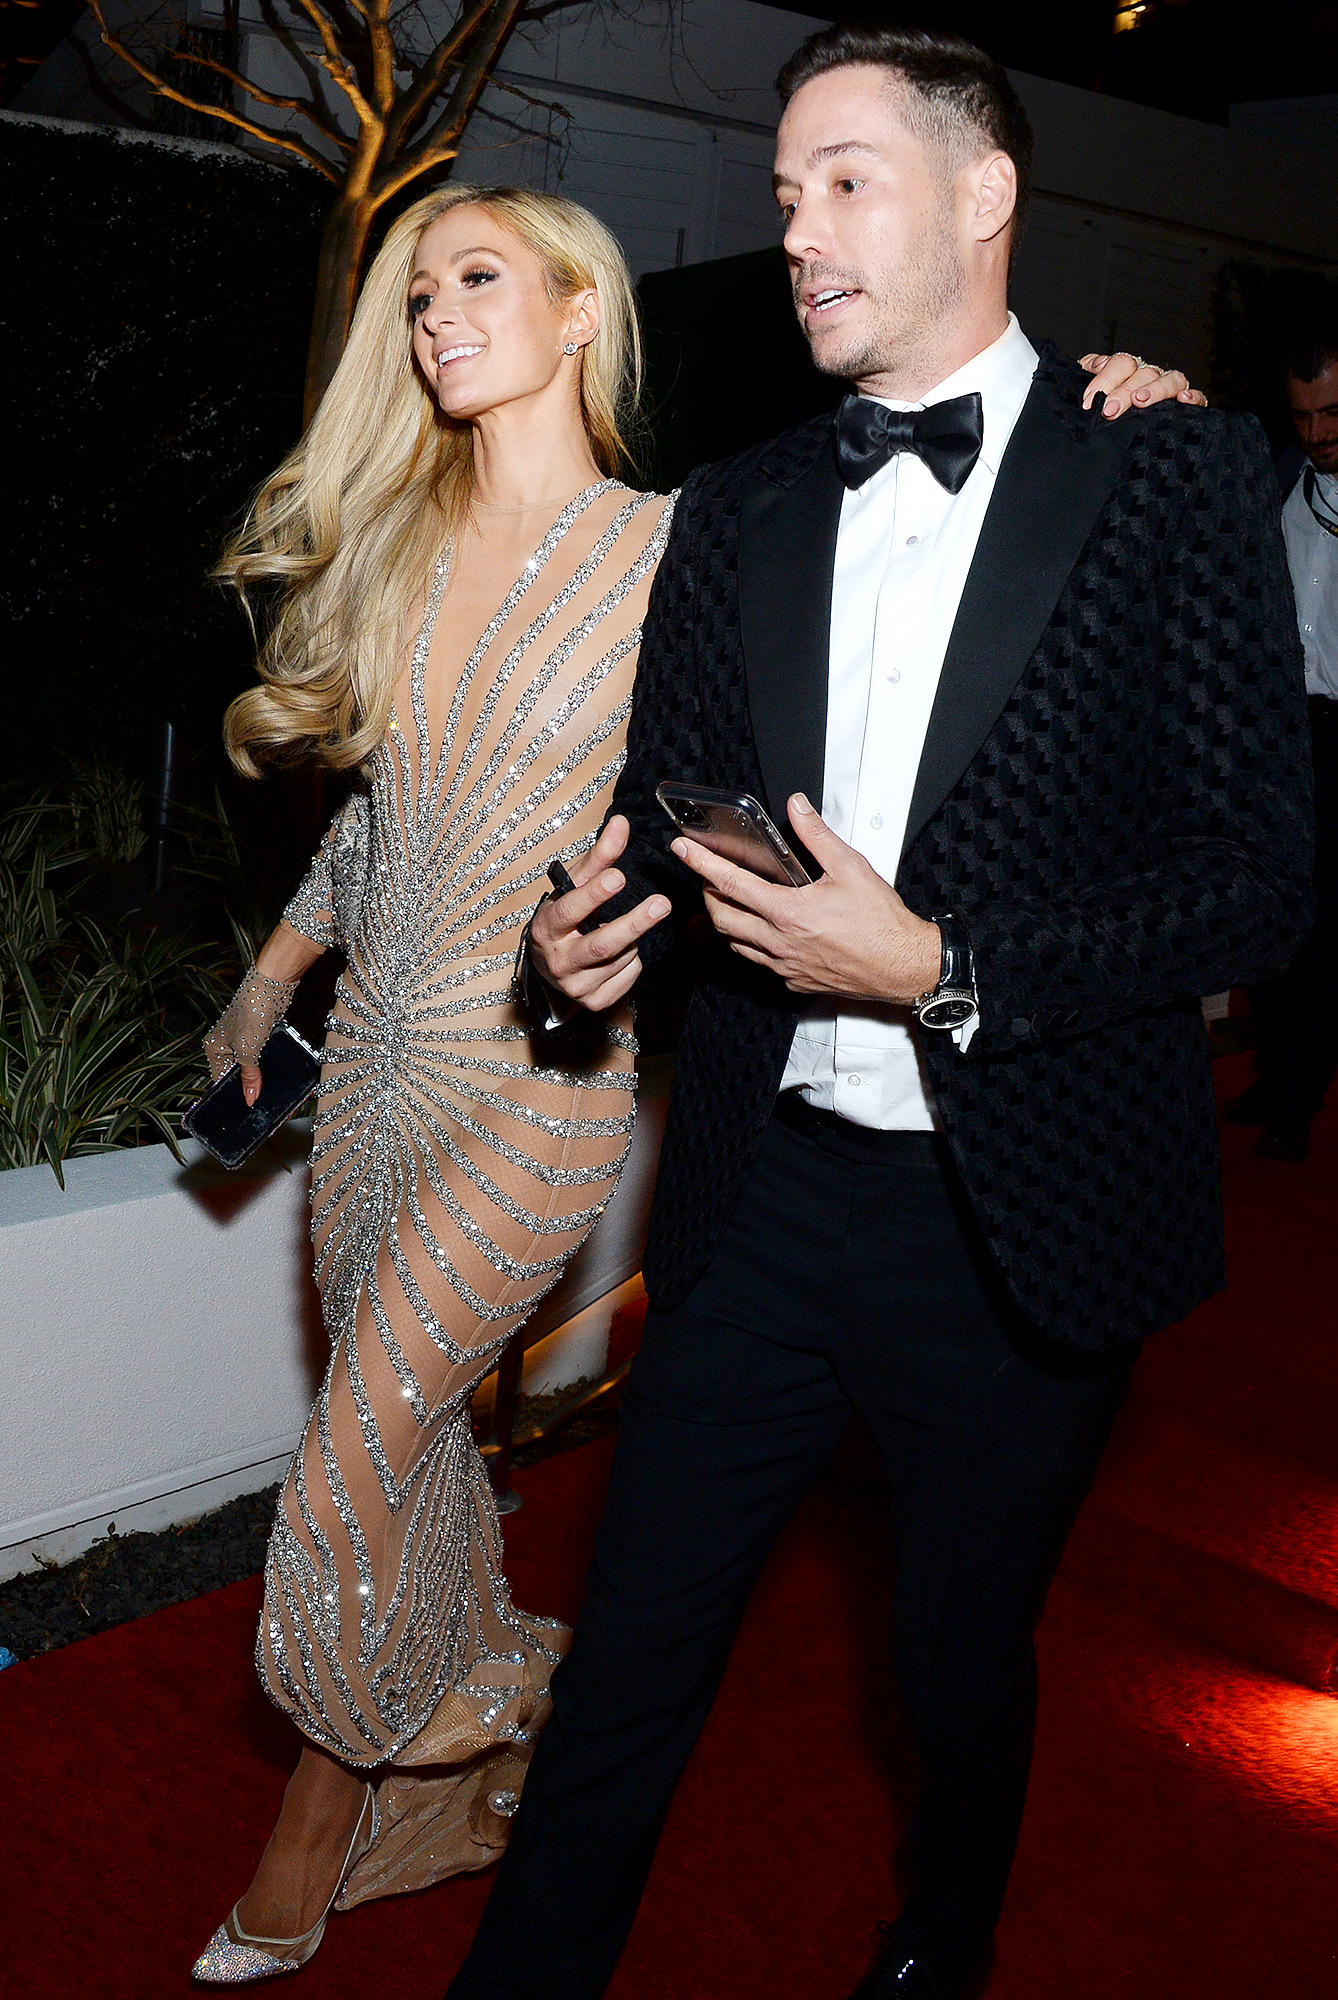 Paris Hilton is dating Carter Reum